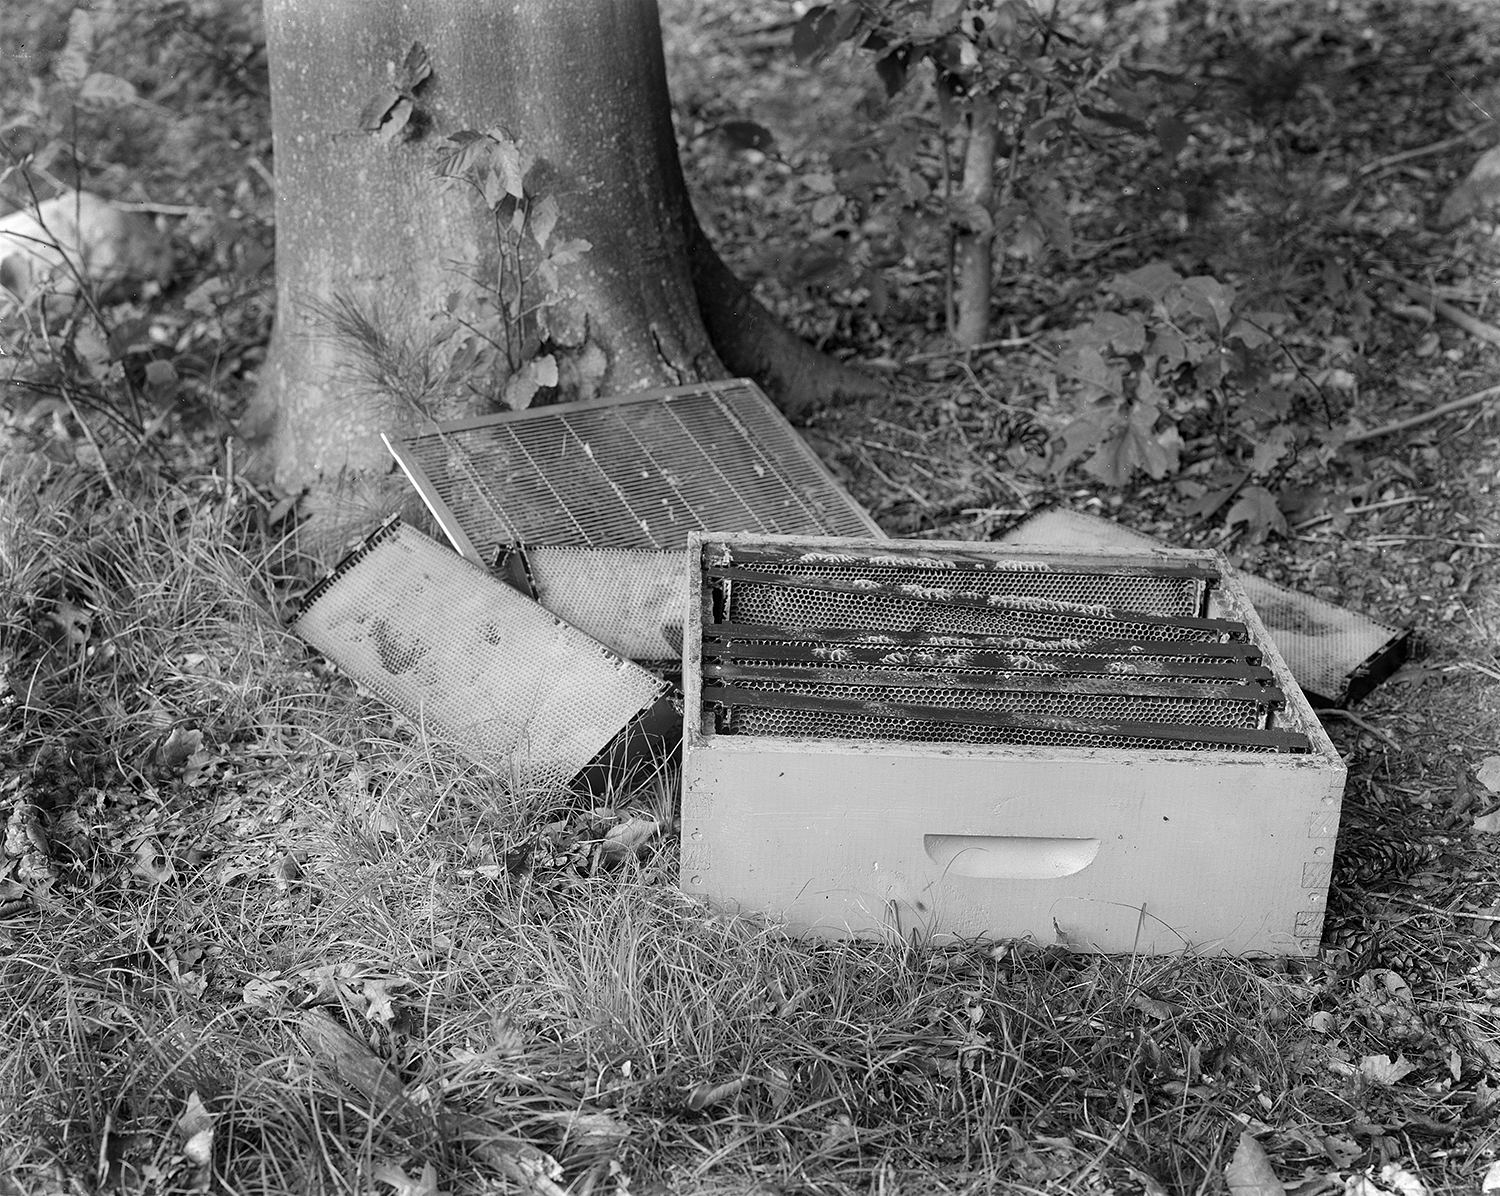 Standard Langstroth Style Beehives  8x10 Large Format Silver Gelatin Contact Print. 2011.